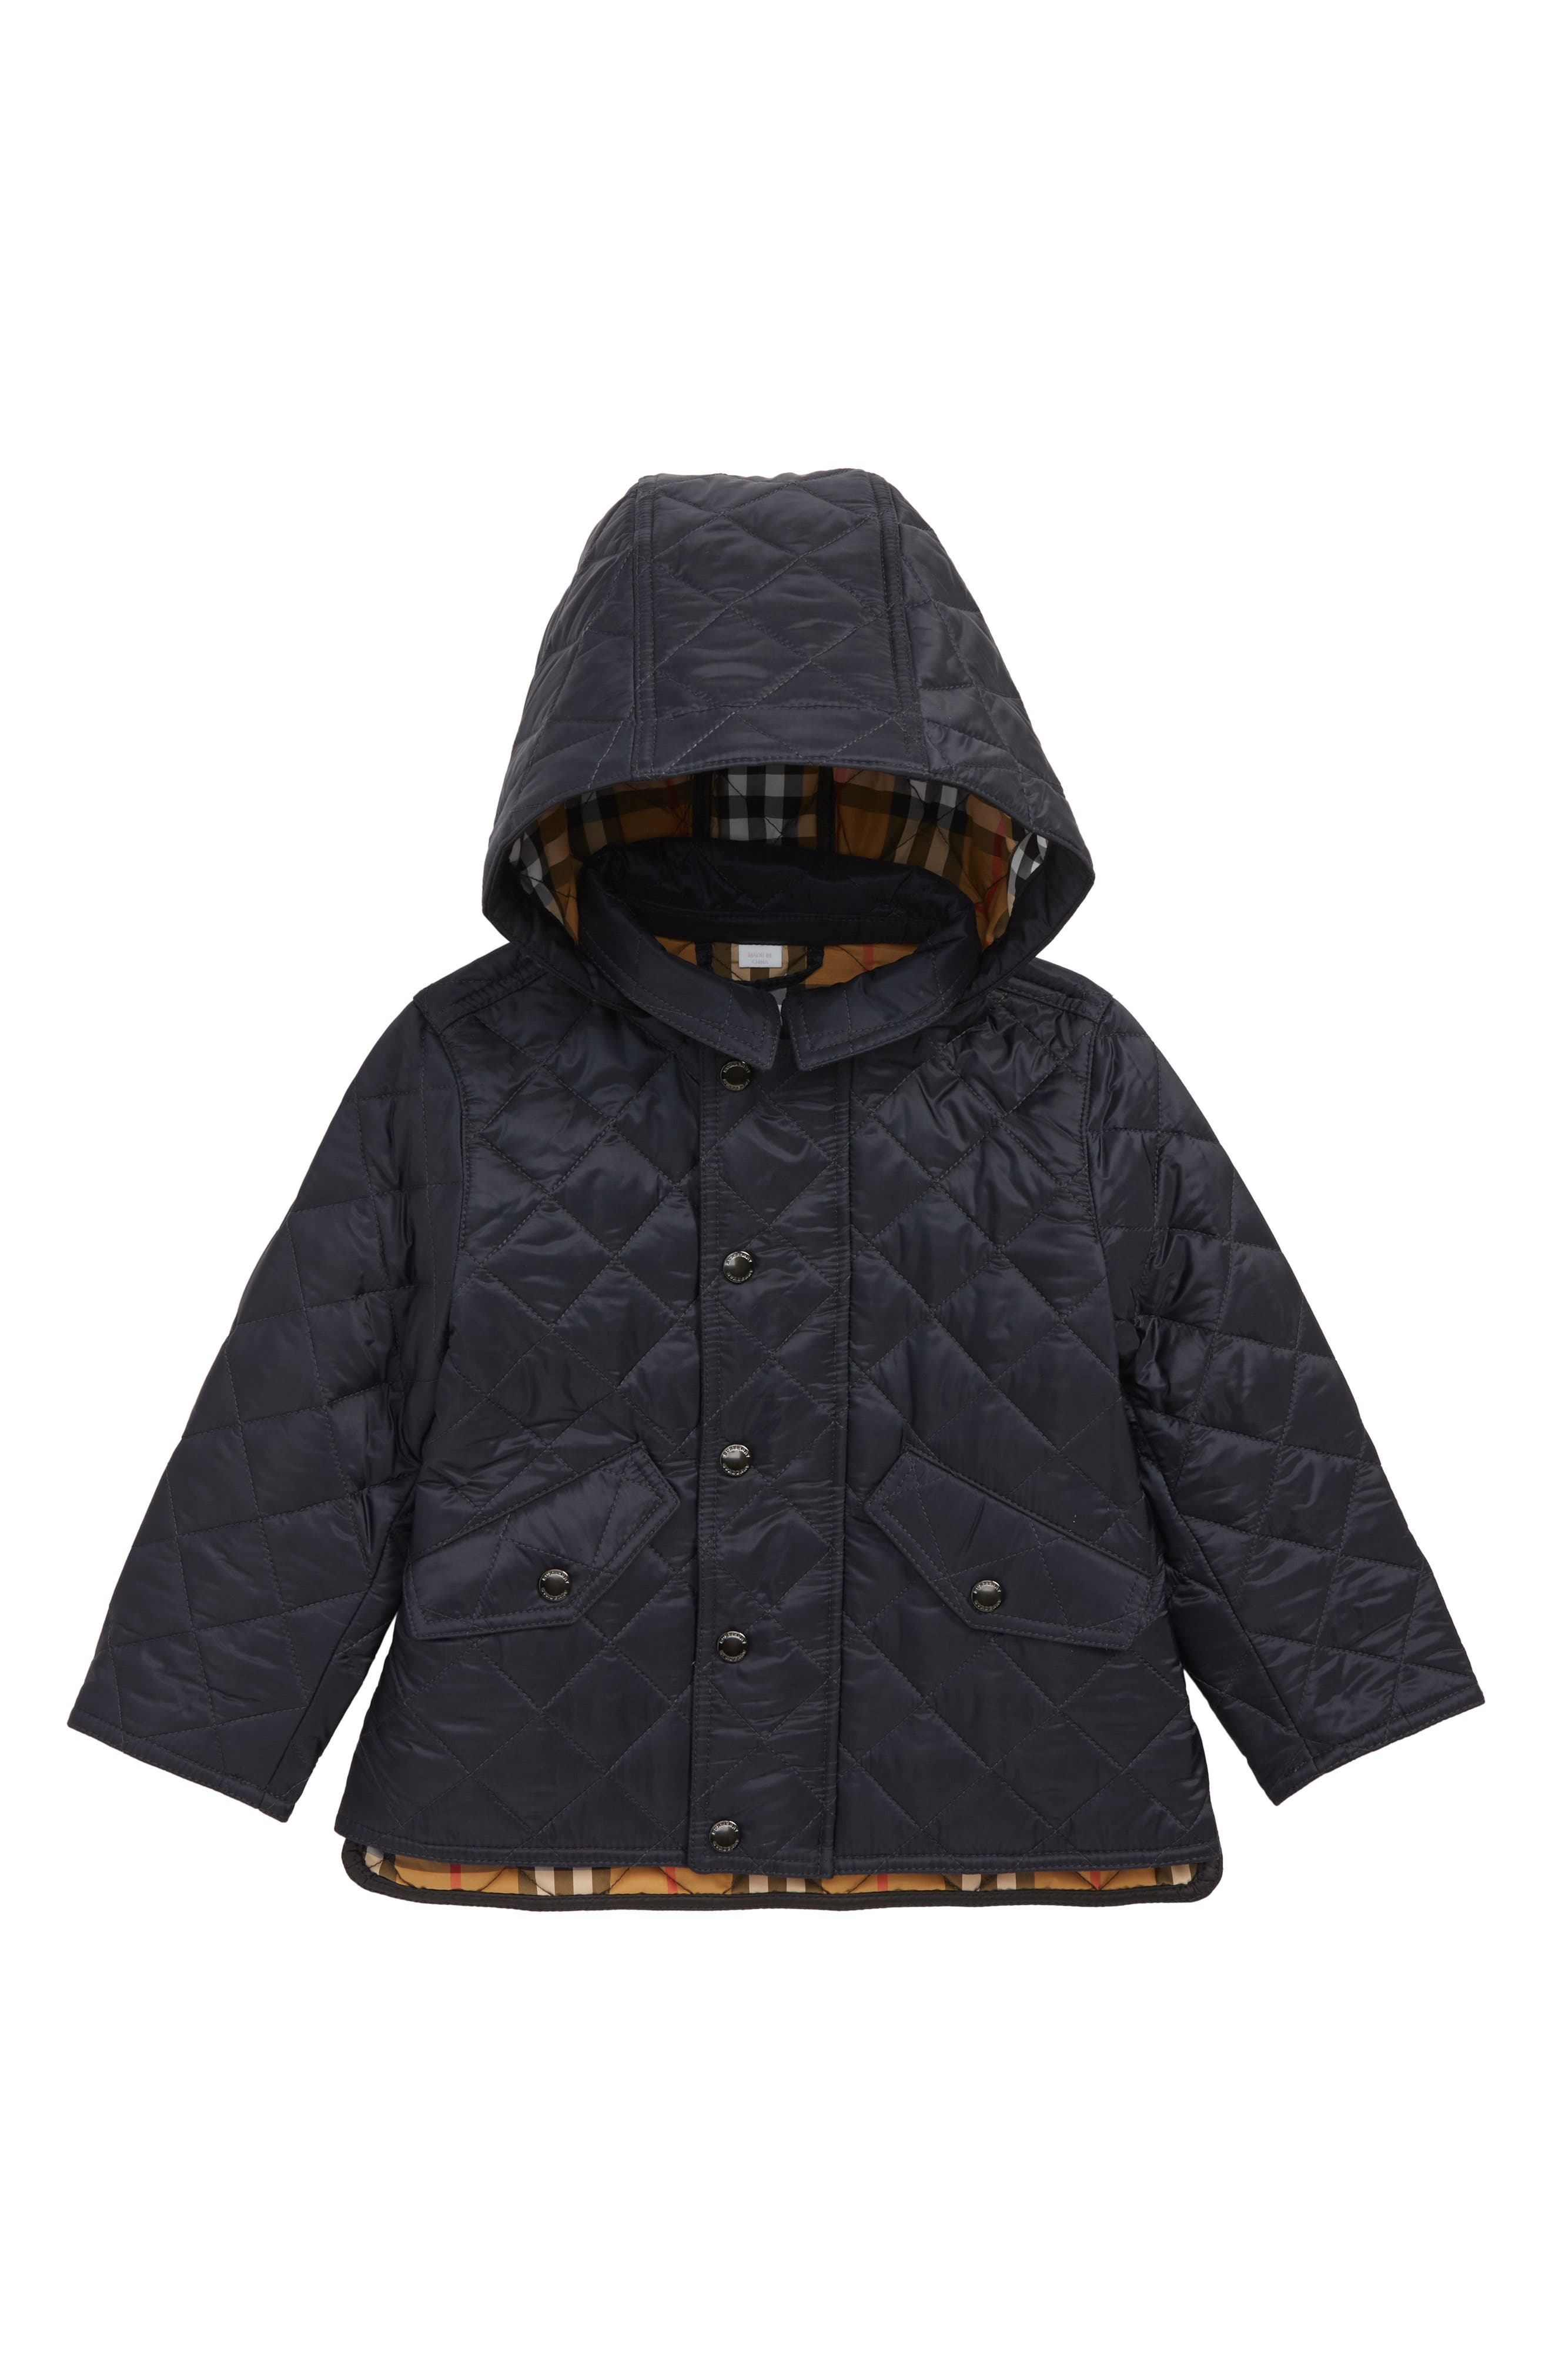 BURBERRY Ilana Quilted Water Repellent Jacket, Main, color, BRIGHT NAVY